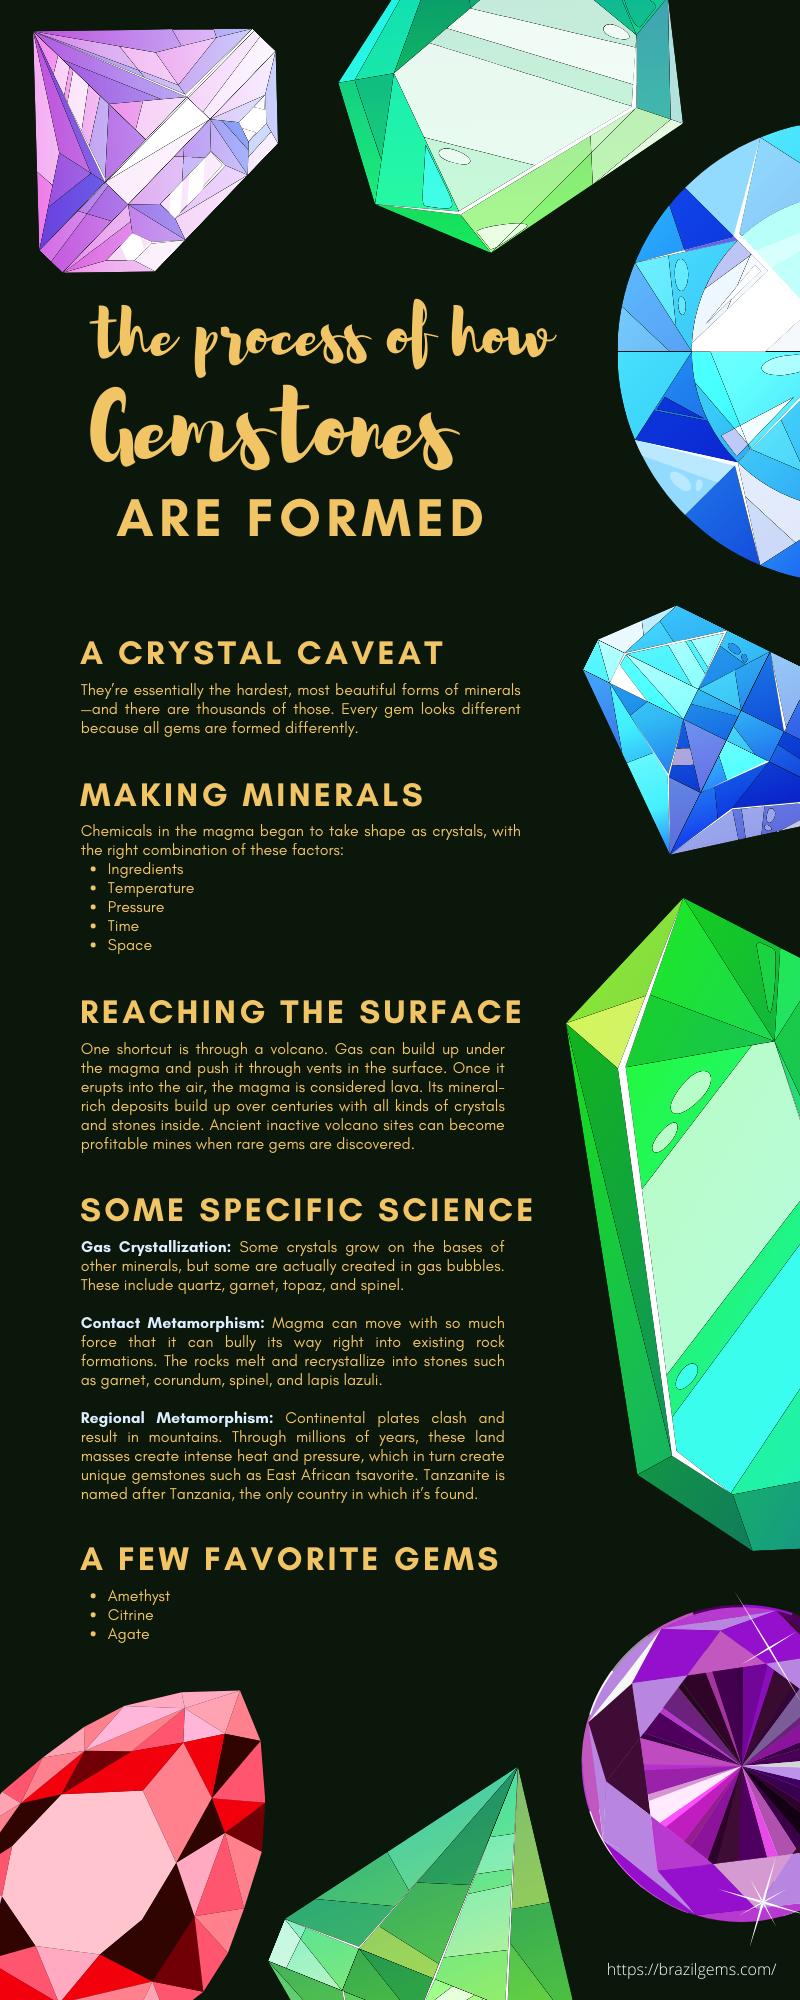 The Natural Process of How Gemstones Are Formed